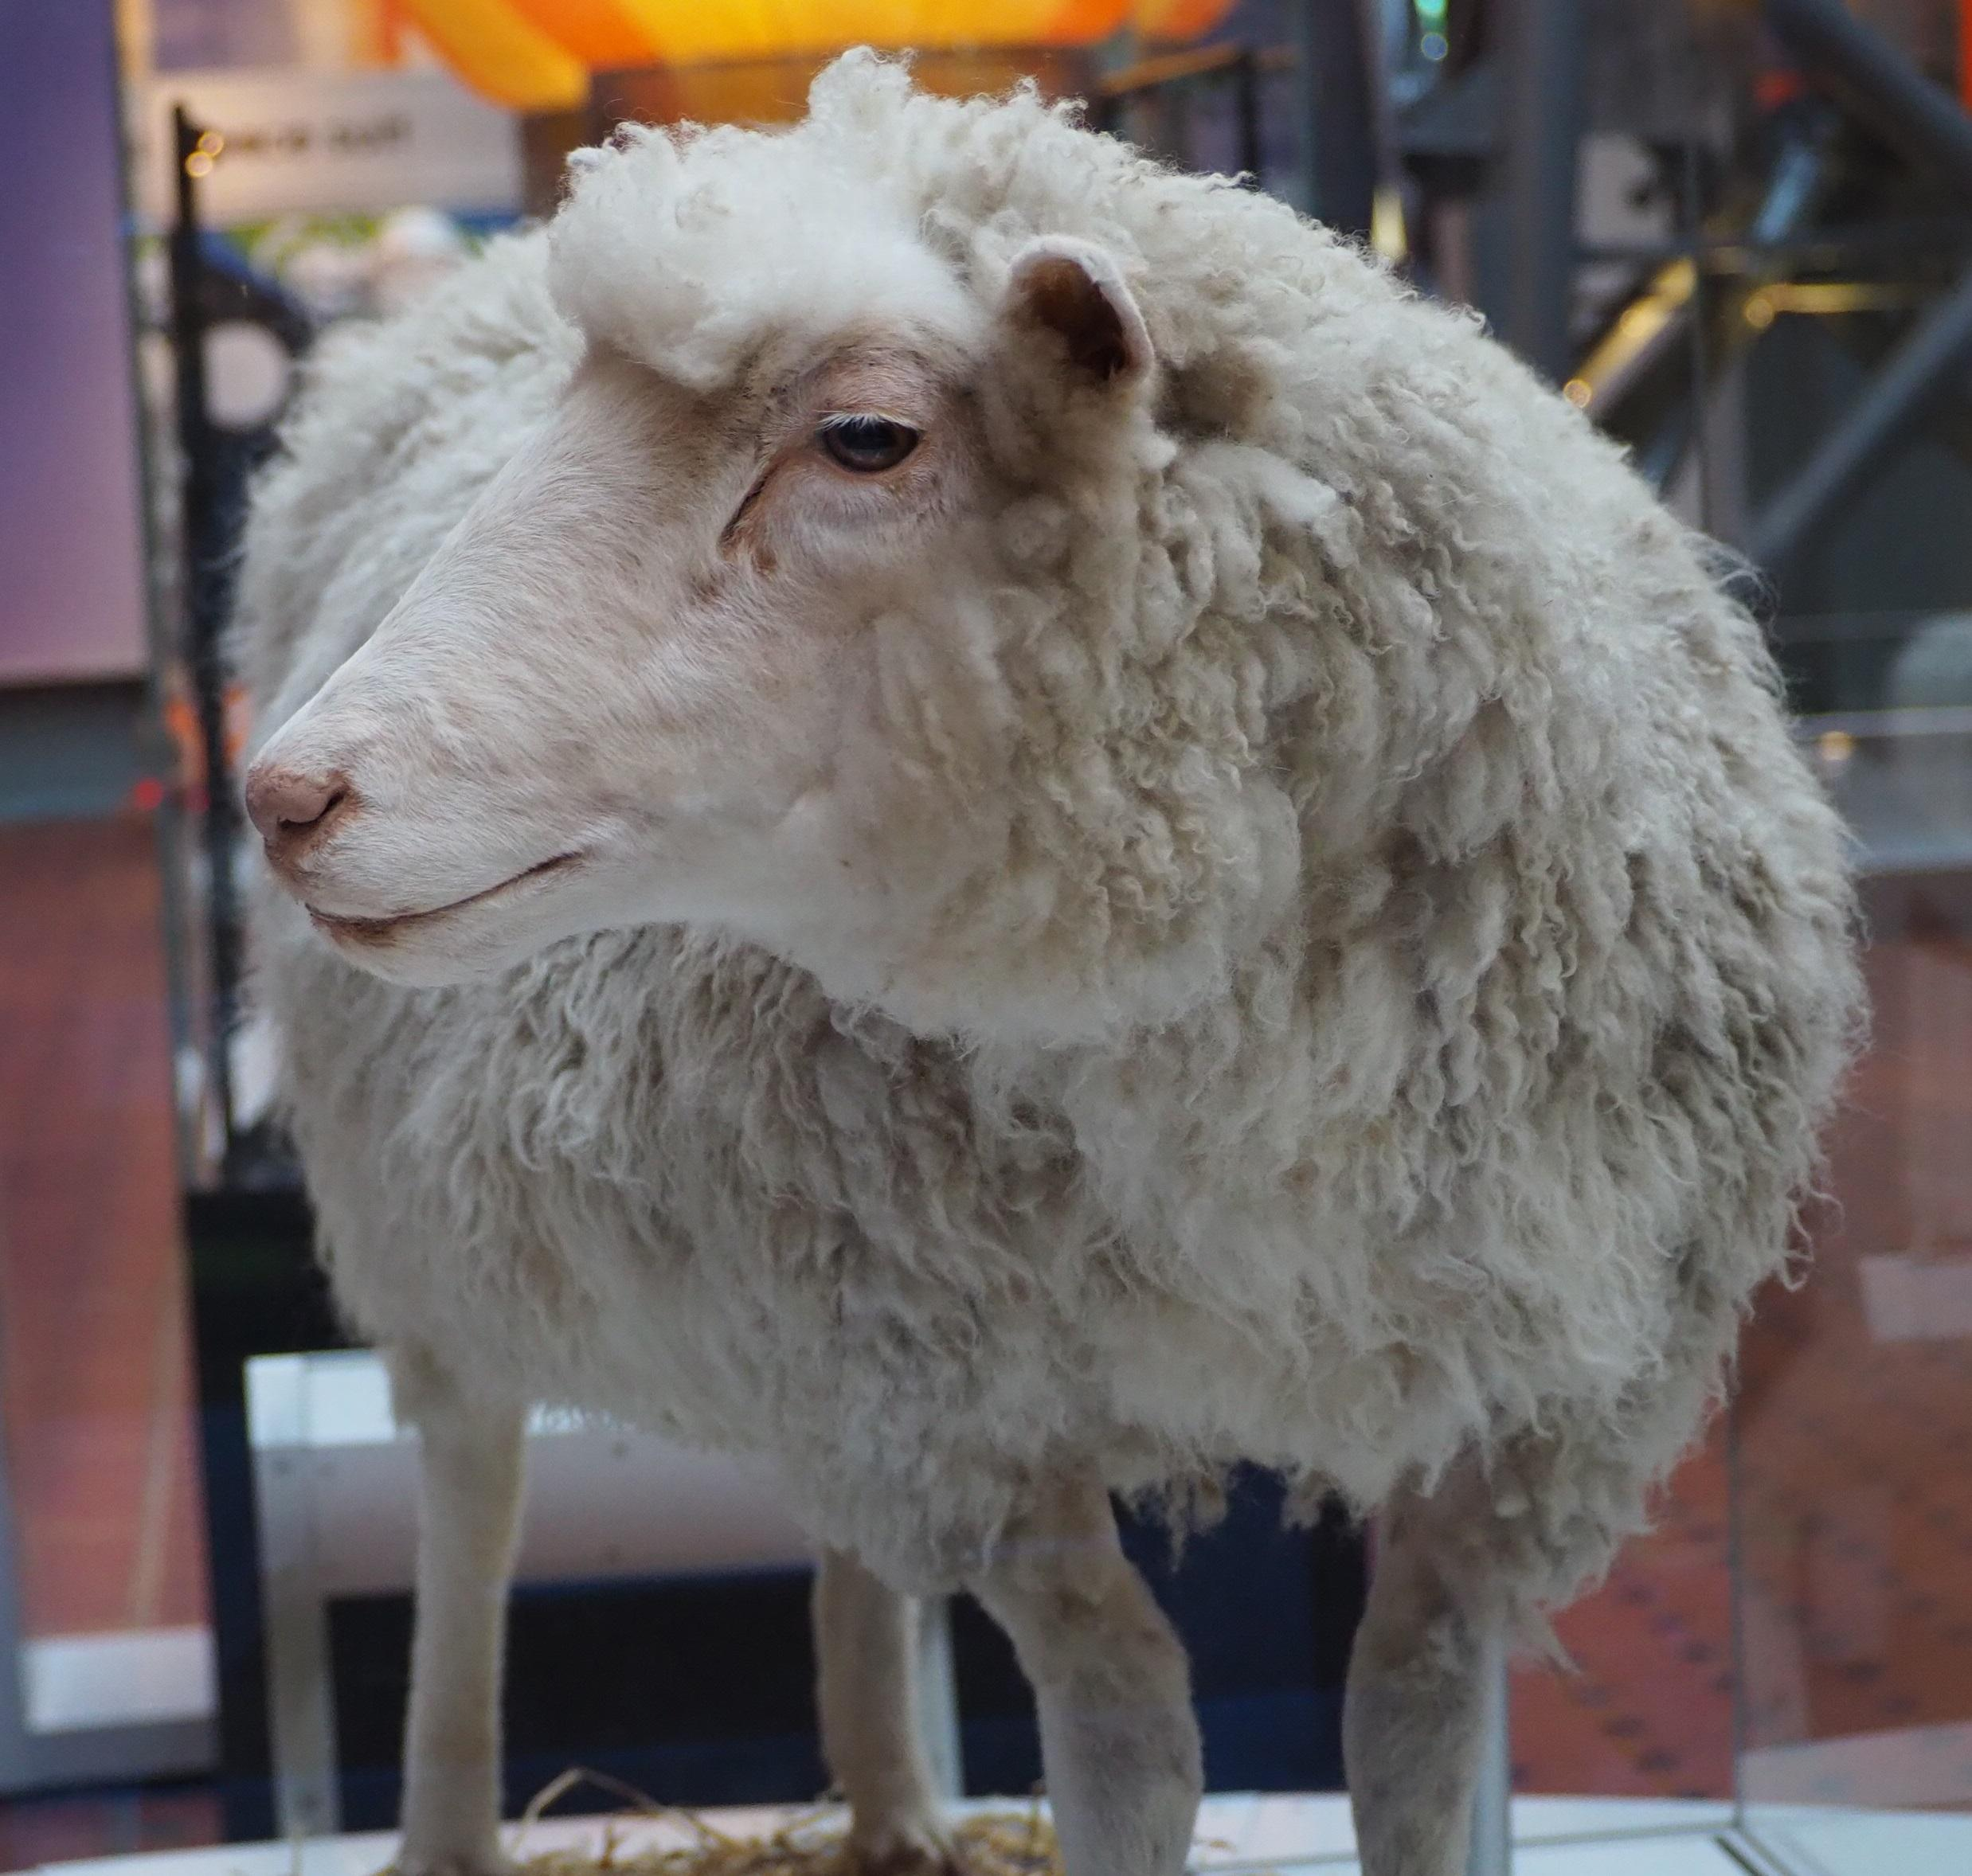 A taxidermied sheep.